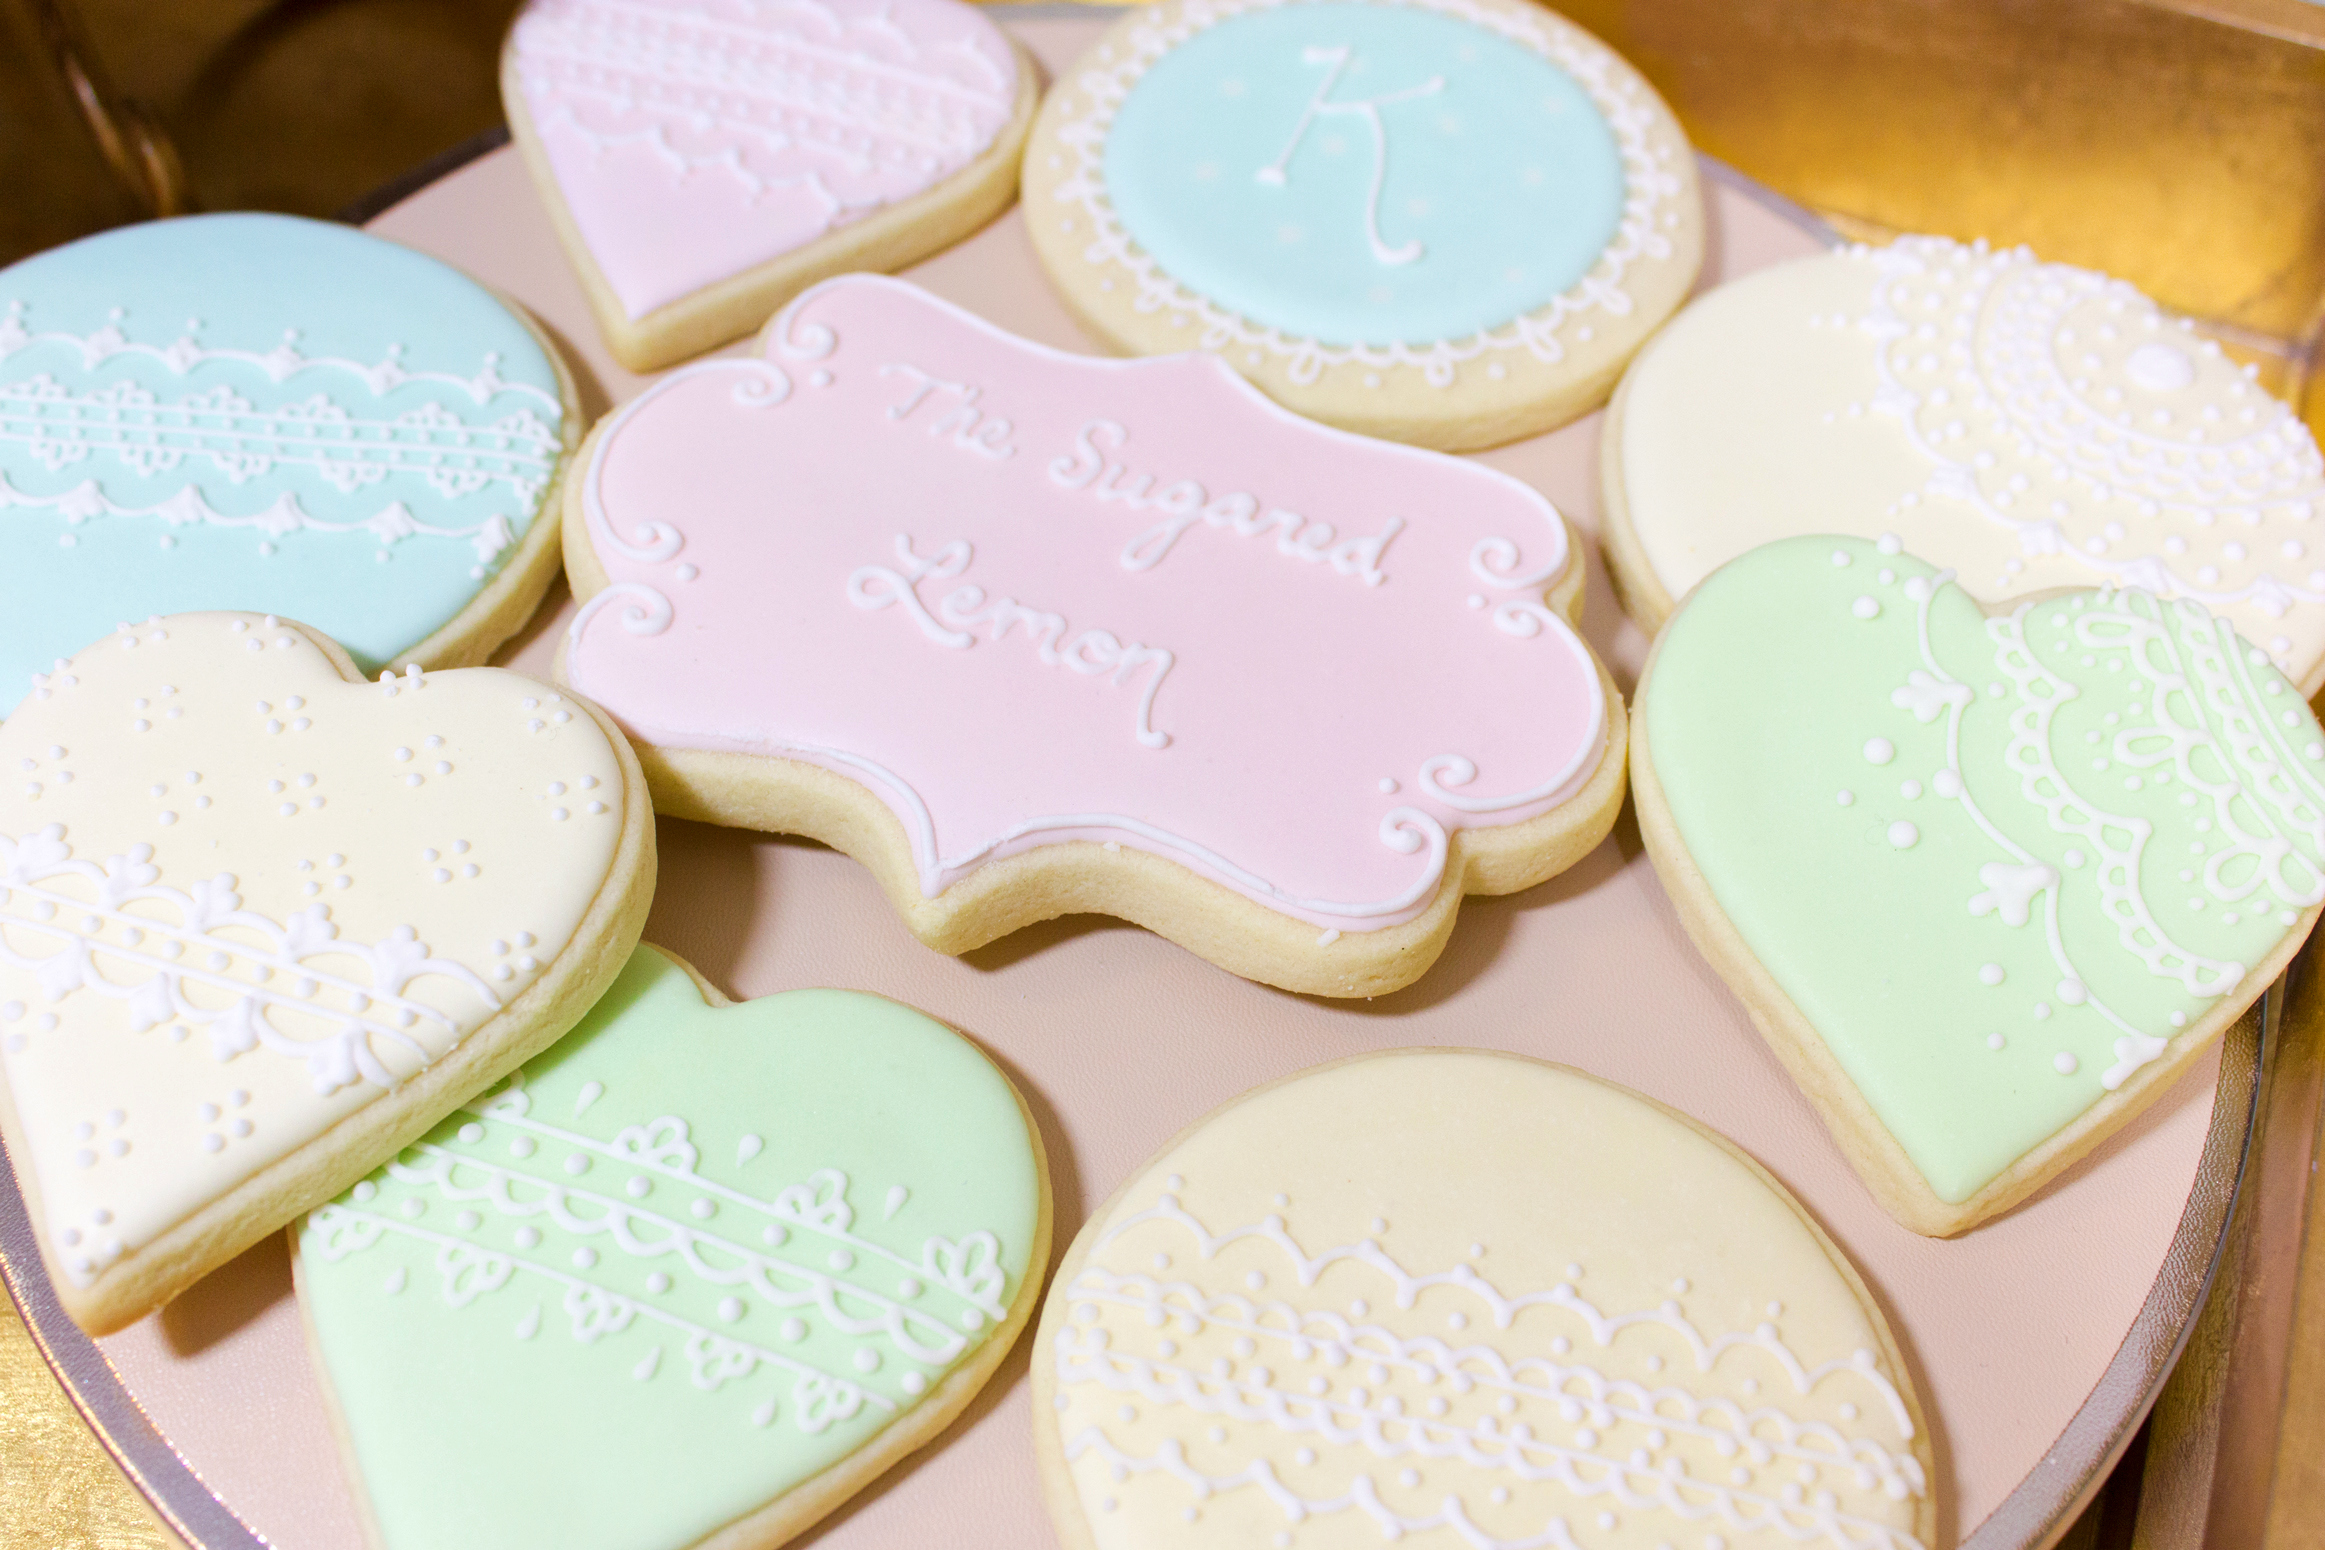 Pastel Laduree inspired lace monogram cookies